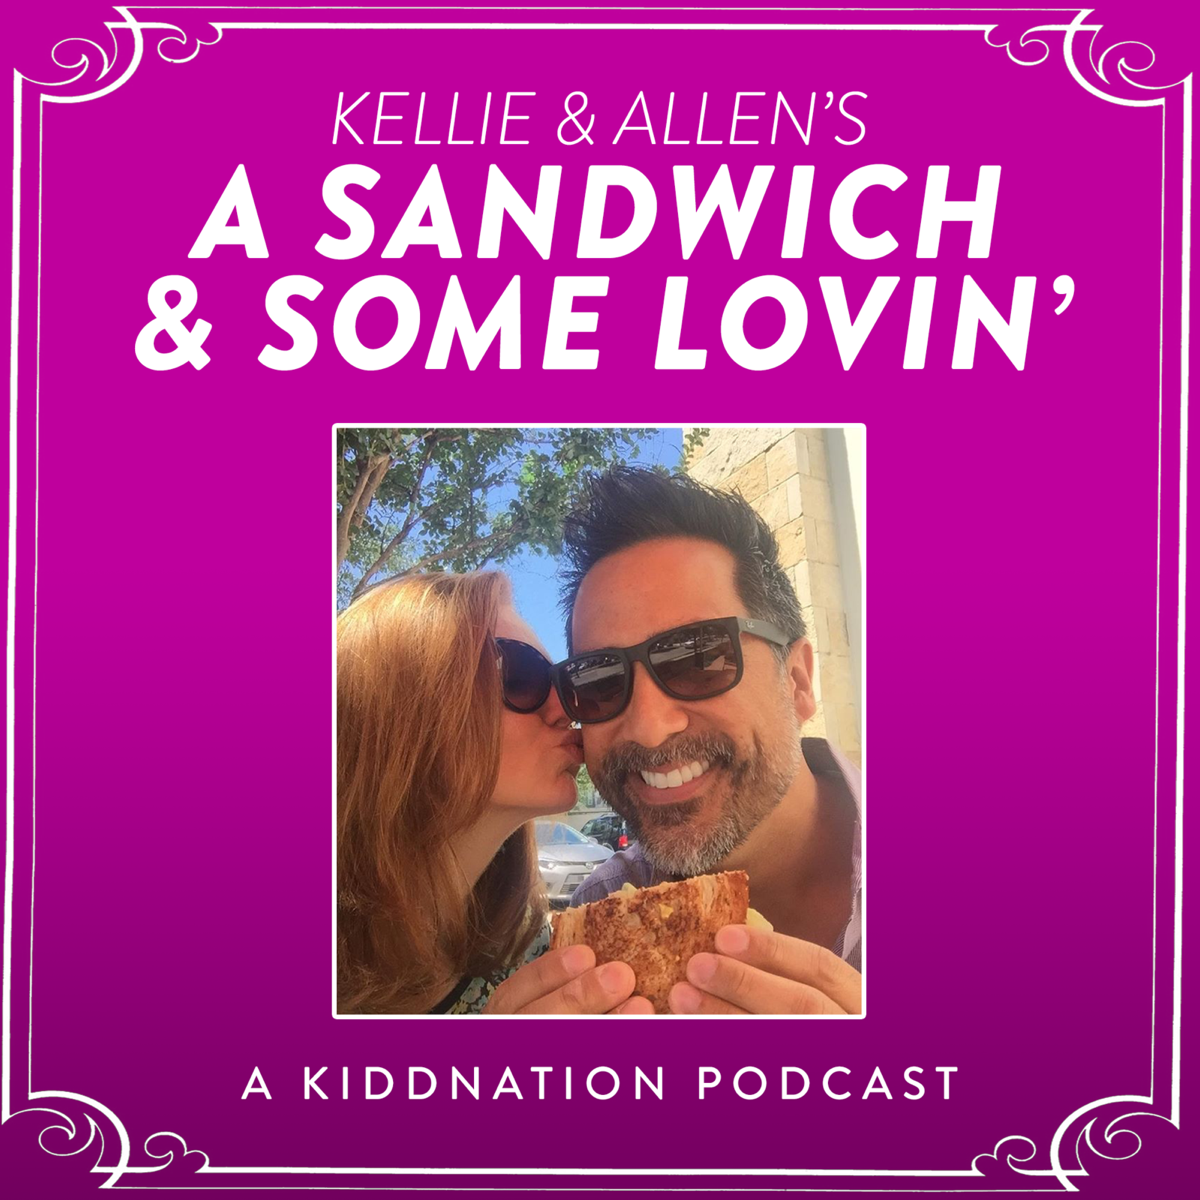 Best episodes of A Sandwich and Some Lovin' | Podyssey Podcasts